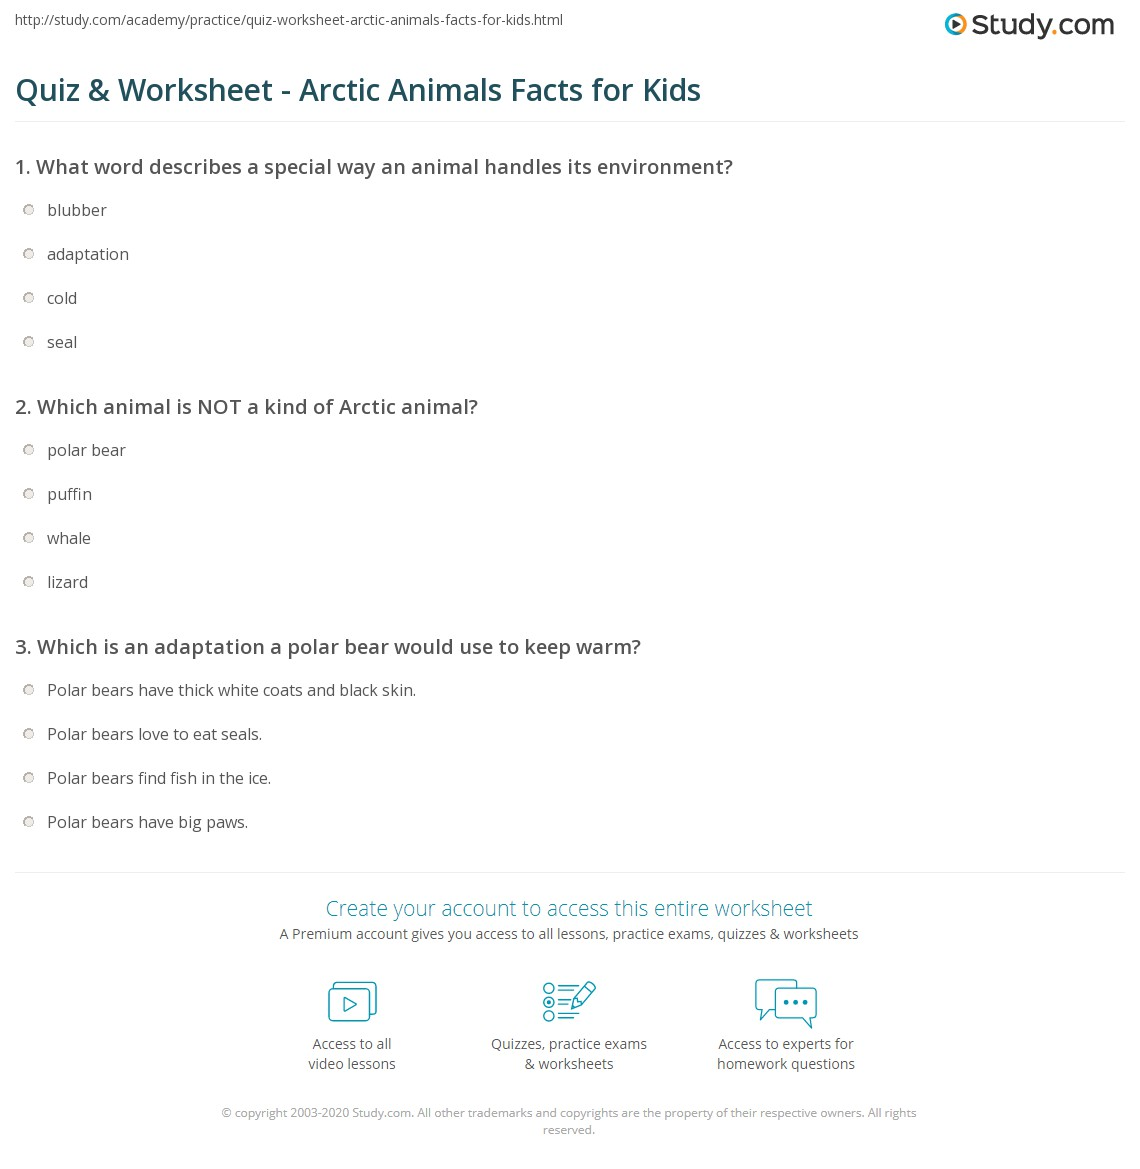 Quiz & Worksheet - Arctic Animals Facts for Kids | Study.com